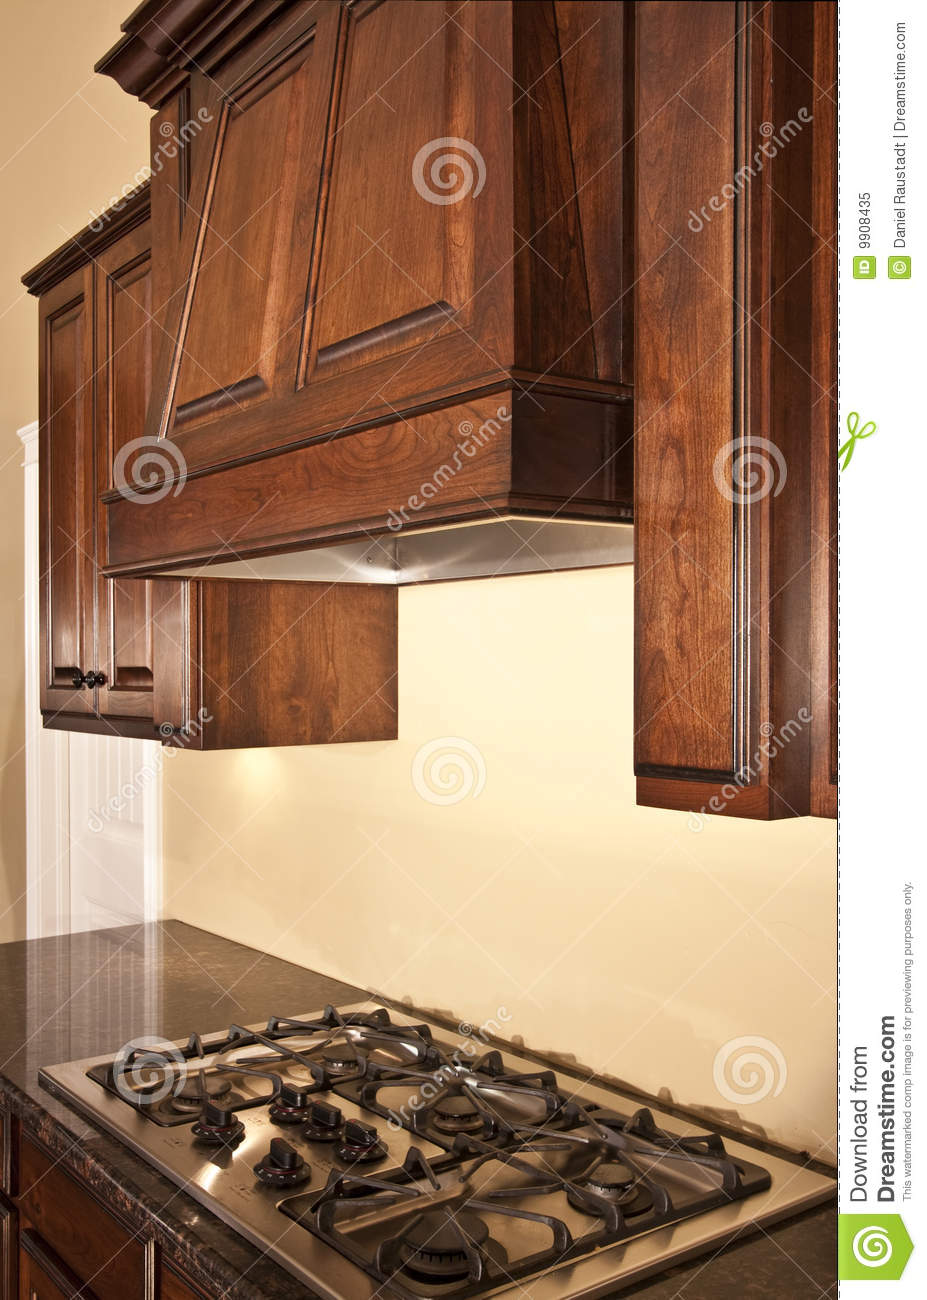 Modern Kitchen Cabinets Range Hood Royalty Free Stock